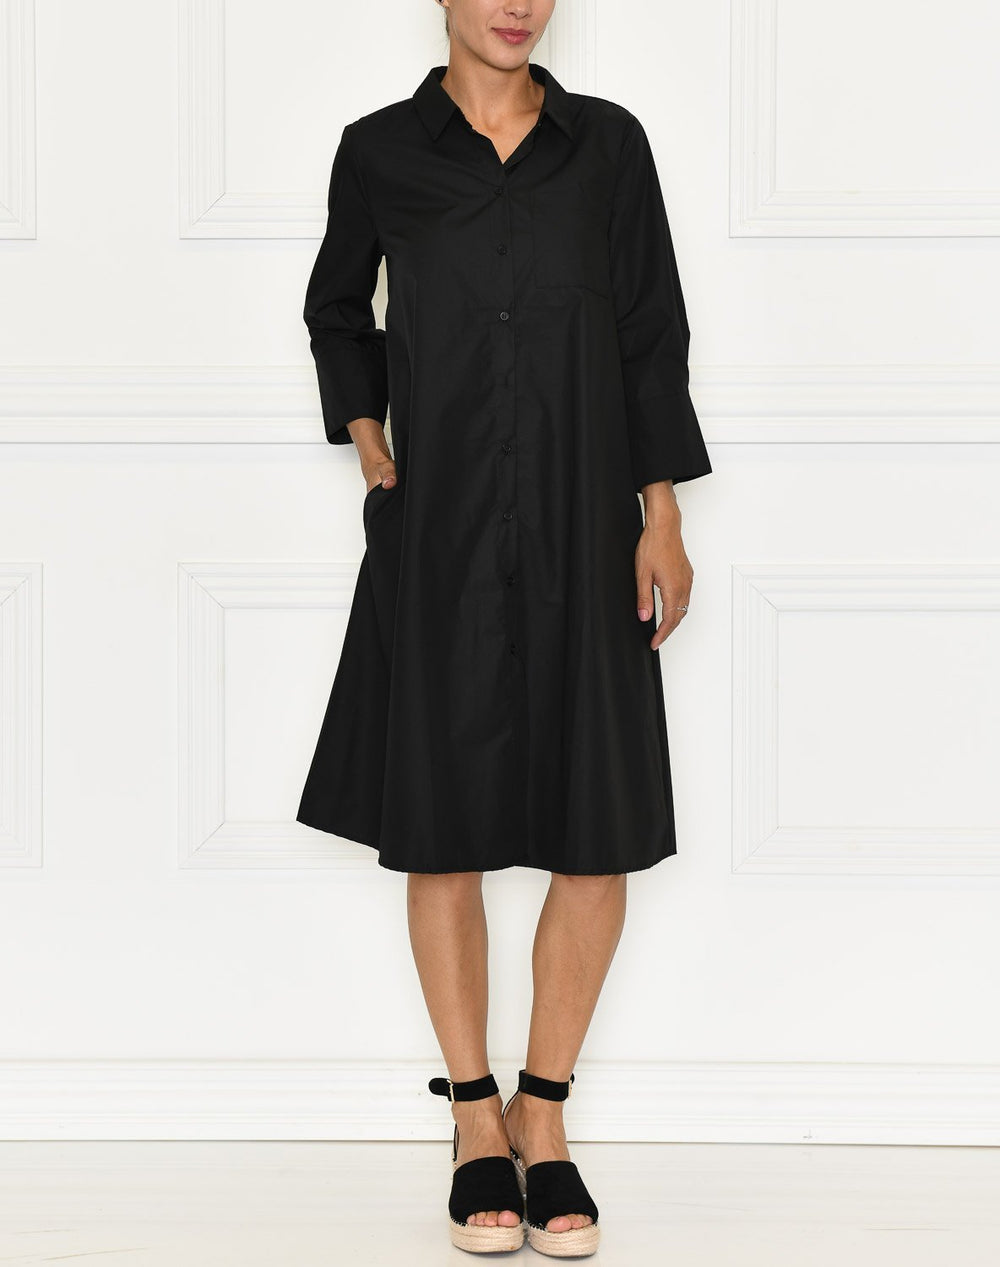 Kaffe KAlolly dress black deep - Online-Mode